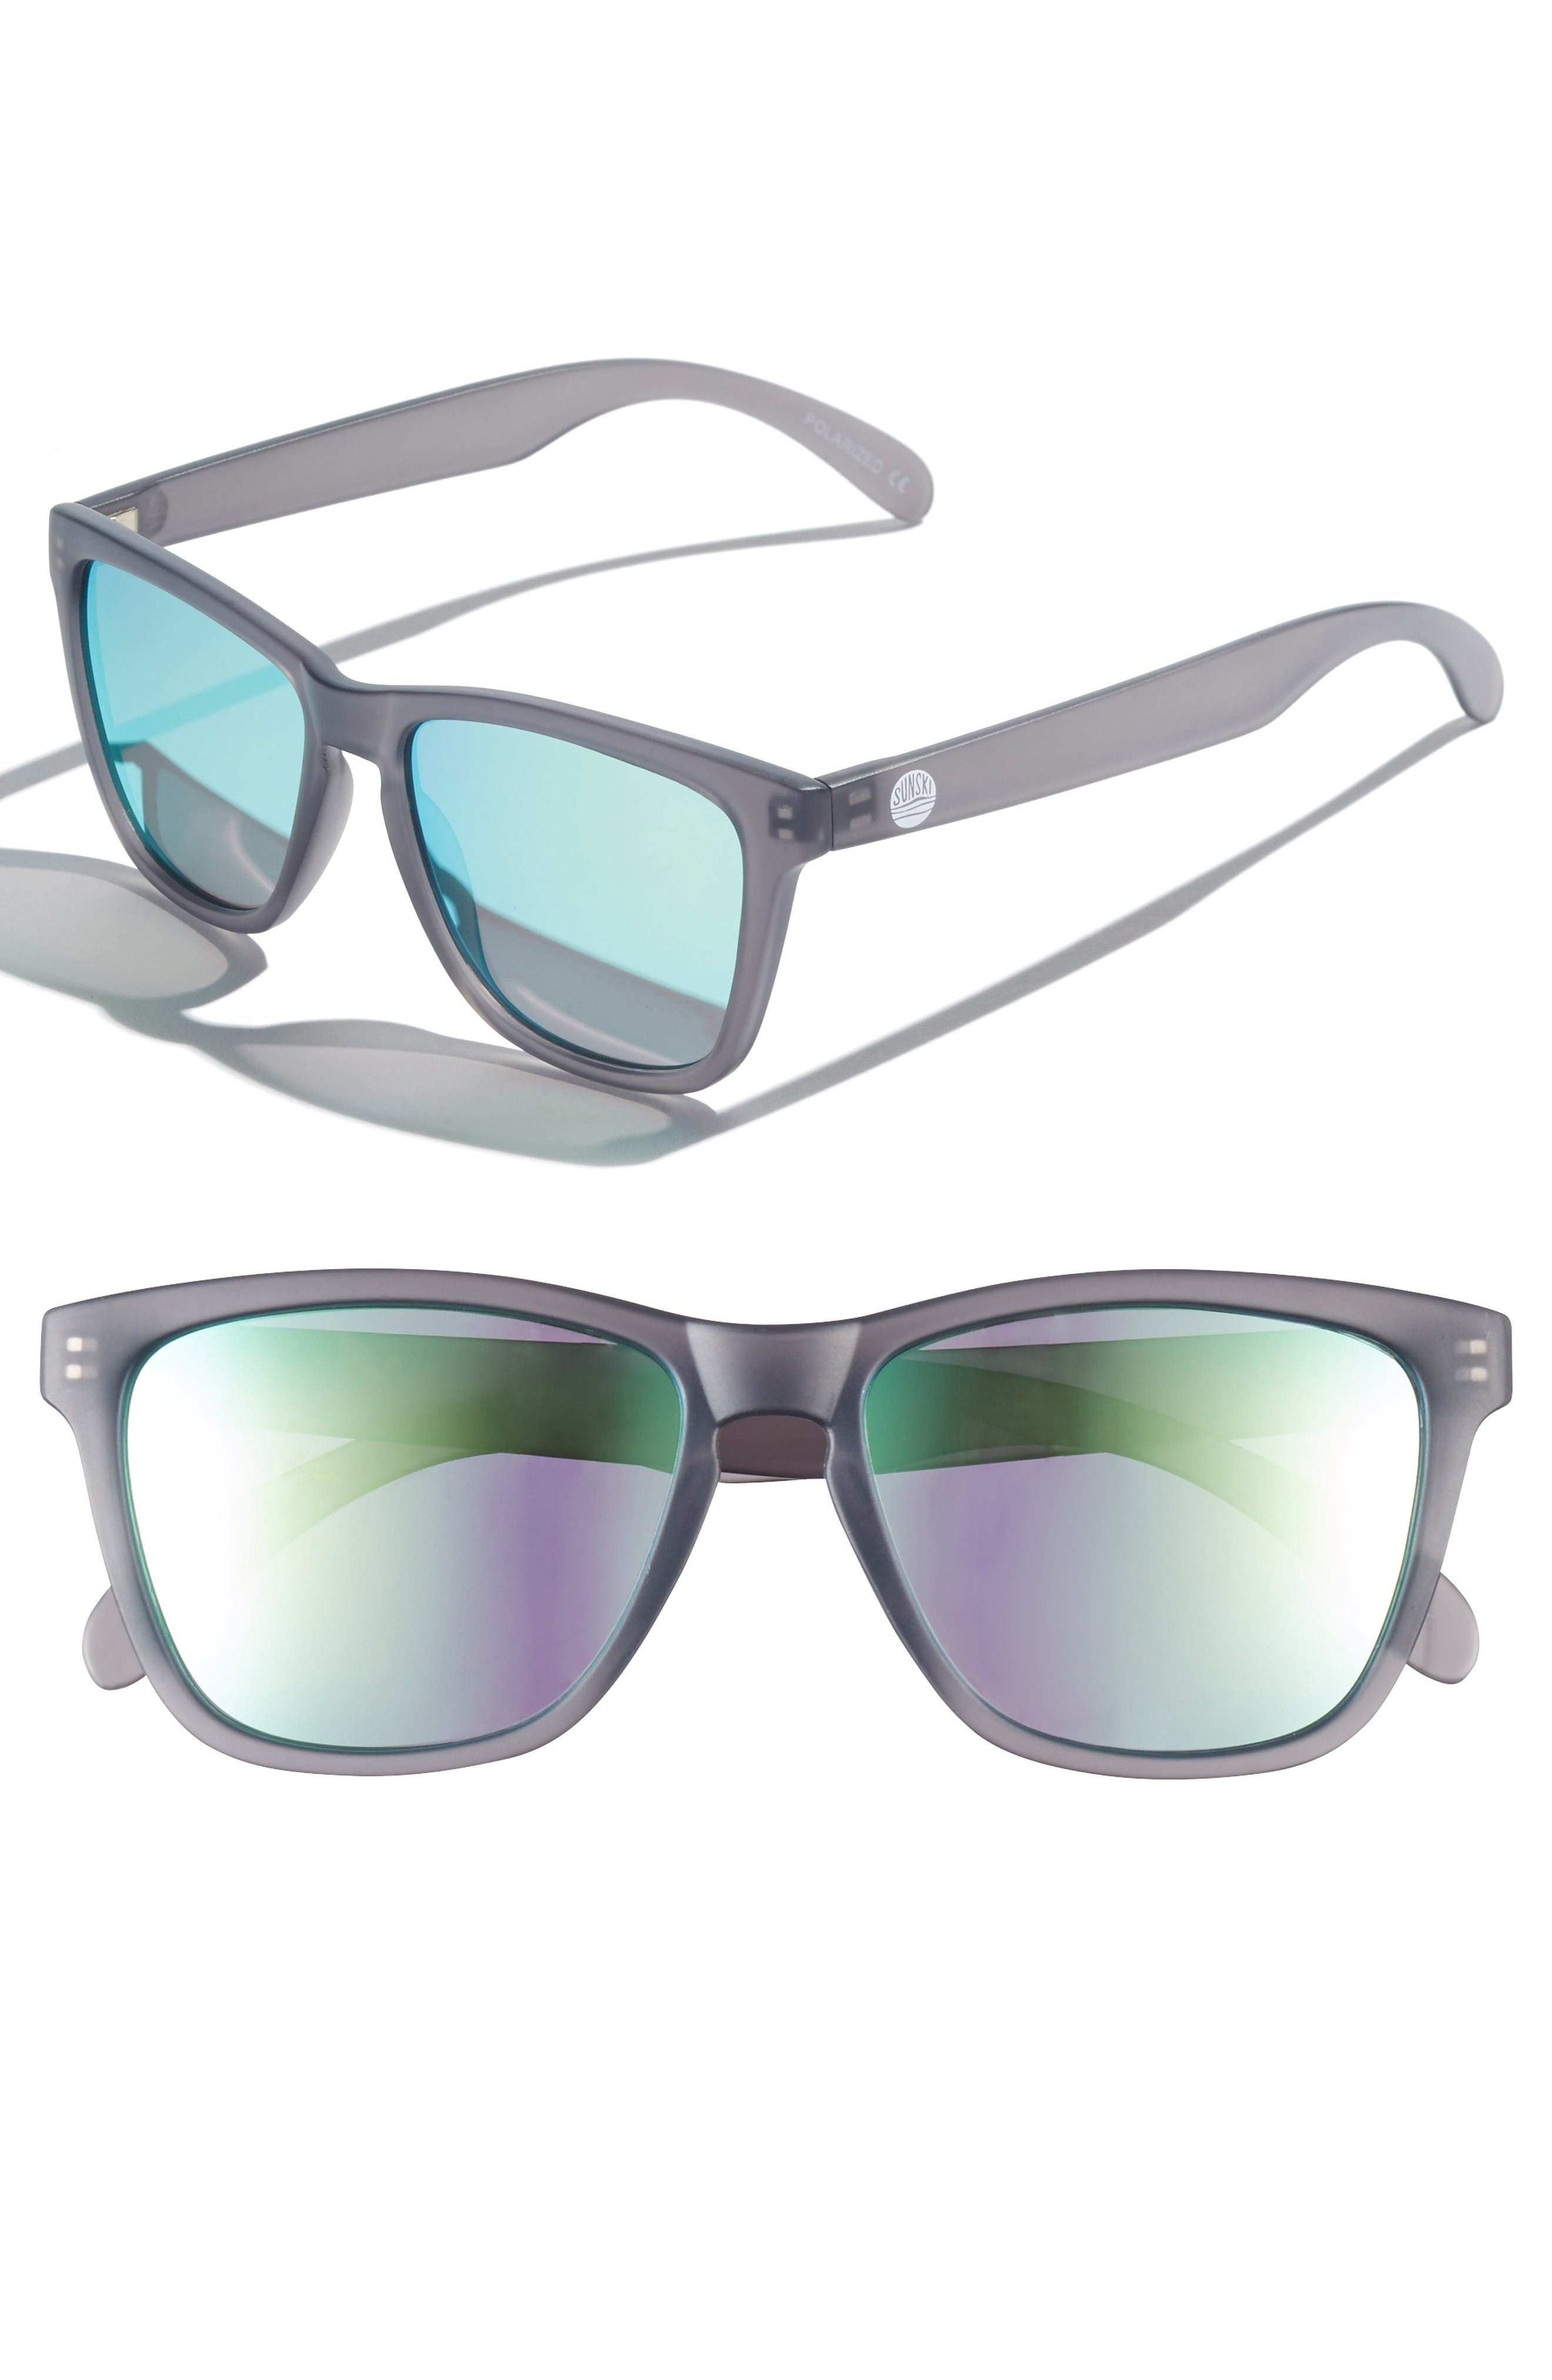 SUNSKI Headland 53m Polarized Sunglasses